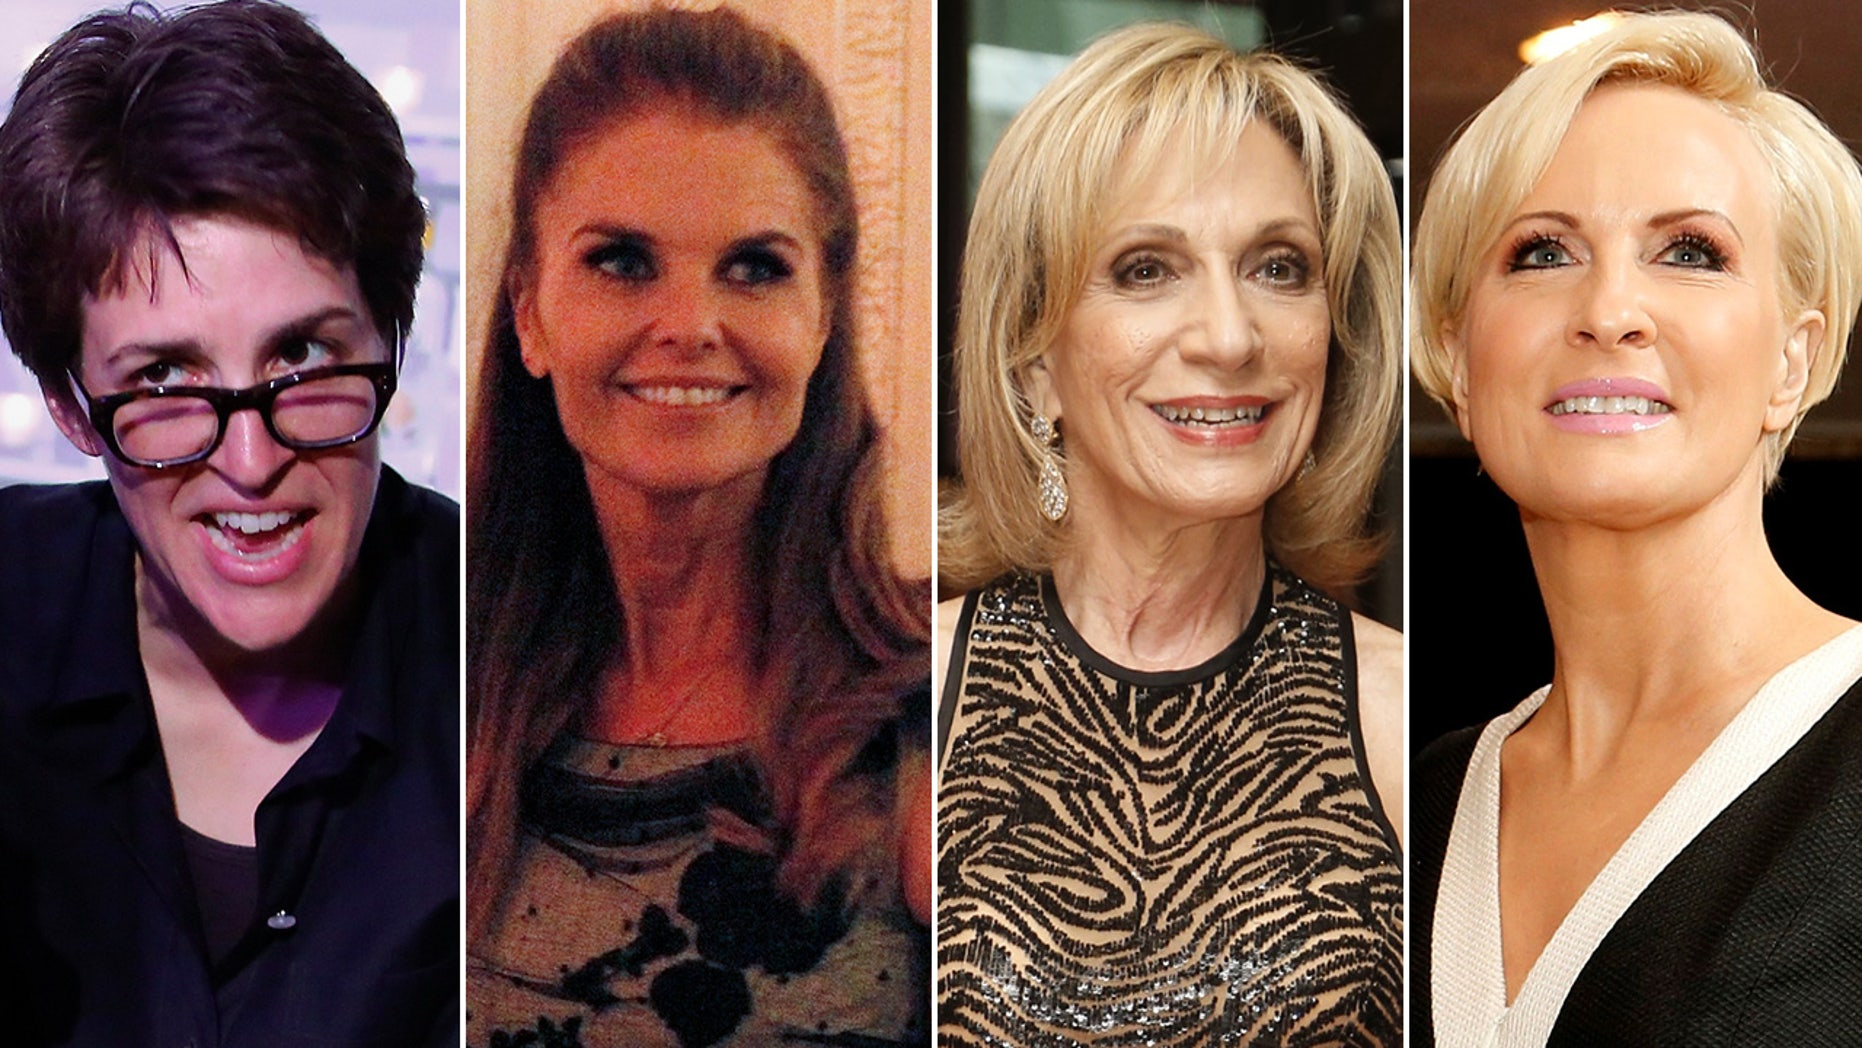 Tom Brokaw's defenders at NBC/MSNBC reportedly include, from left, Rachel Maddow, Maria Shriver, Andrea Mitchell and Mika Brzezinski.